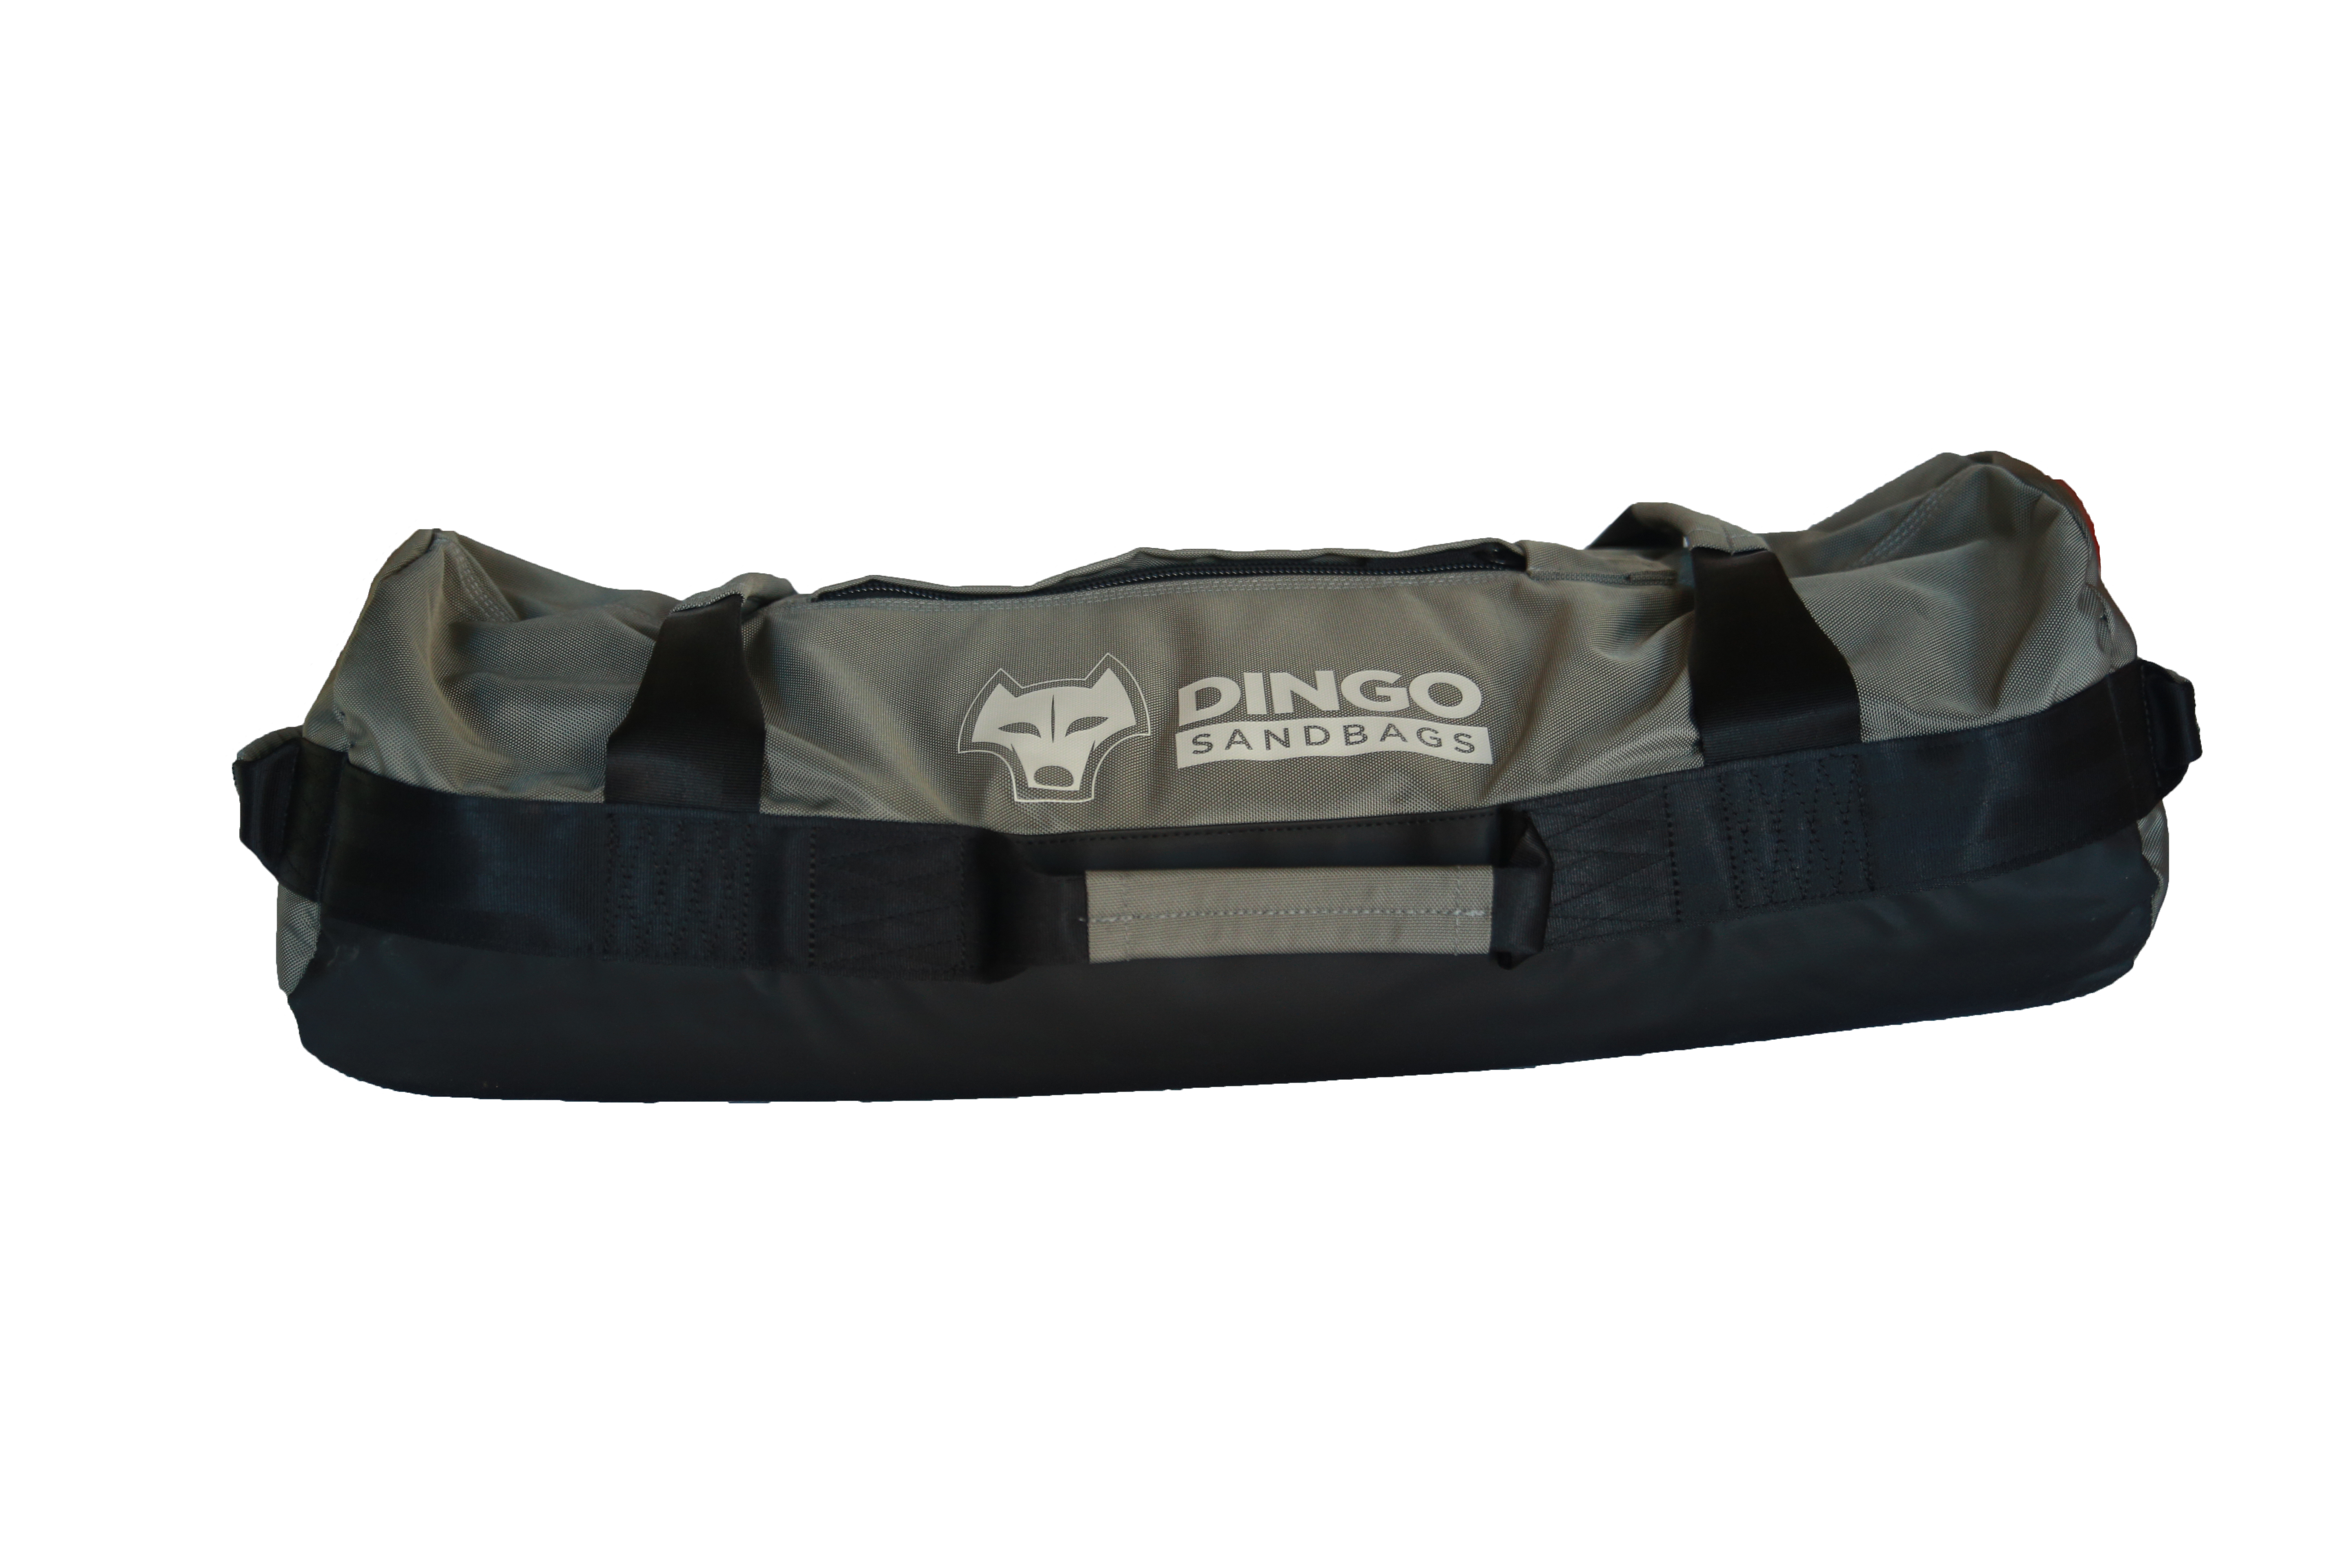 Medium-Large Sandbag 20-30kg (with black tarpaulin base)